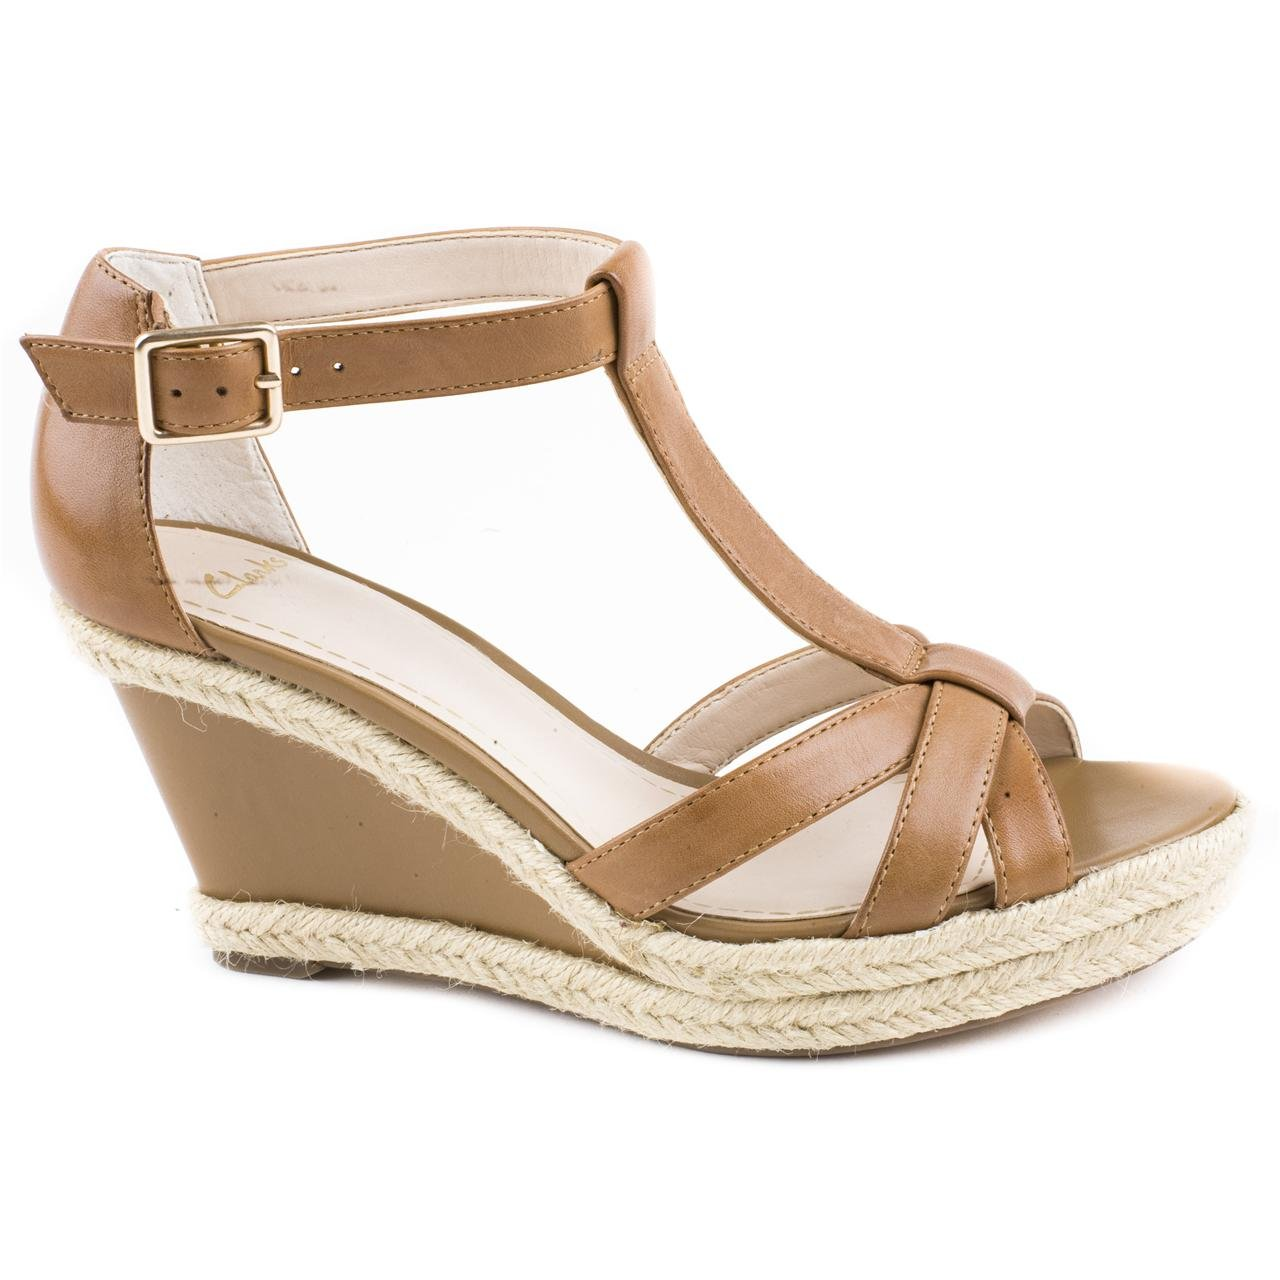 b15b83f4018 Ladies Clarks Octagon Bahama Tan Wedge Sandals Size 8  Amazon.co.uk  Shoes    Bags